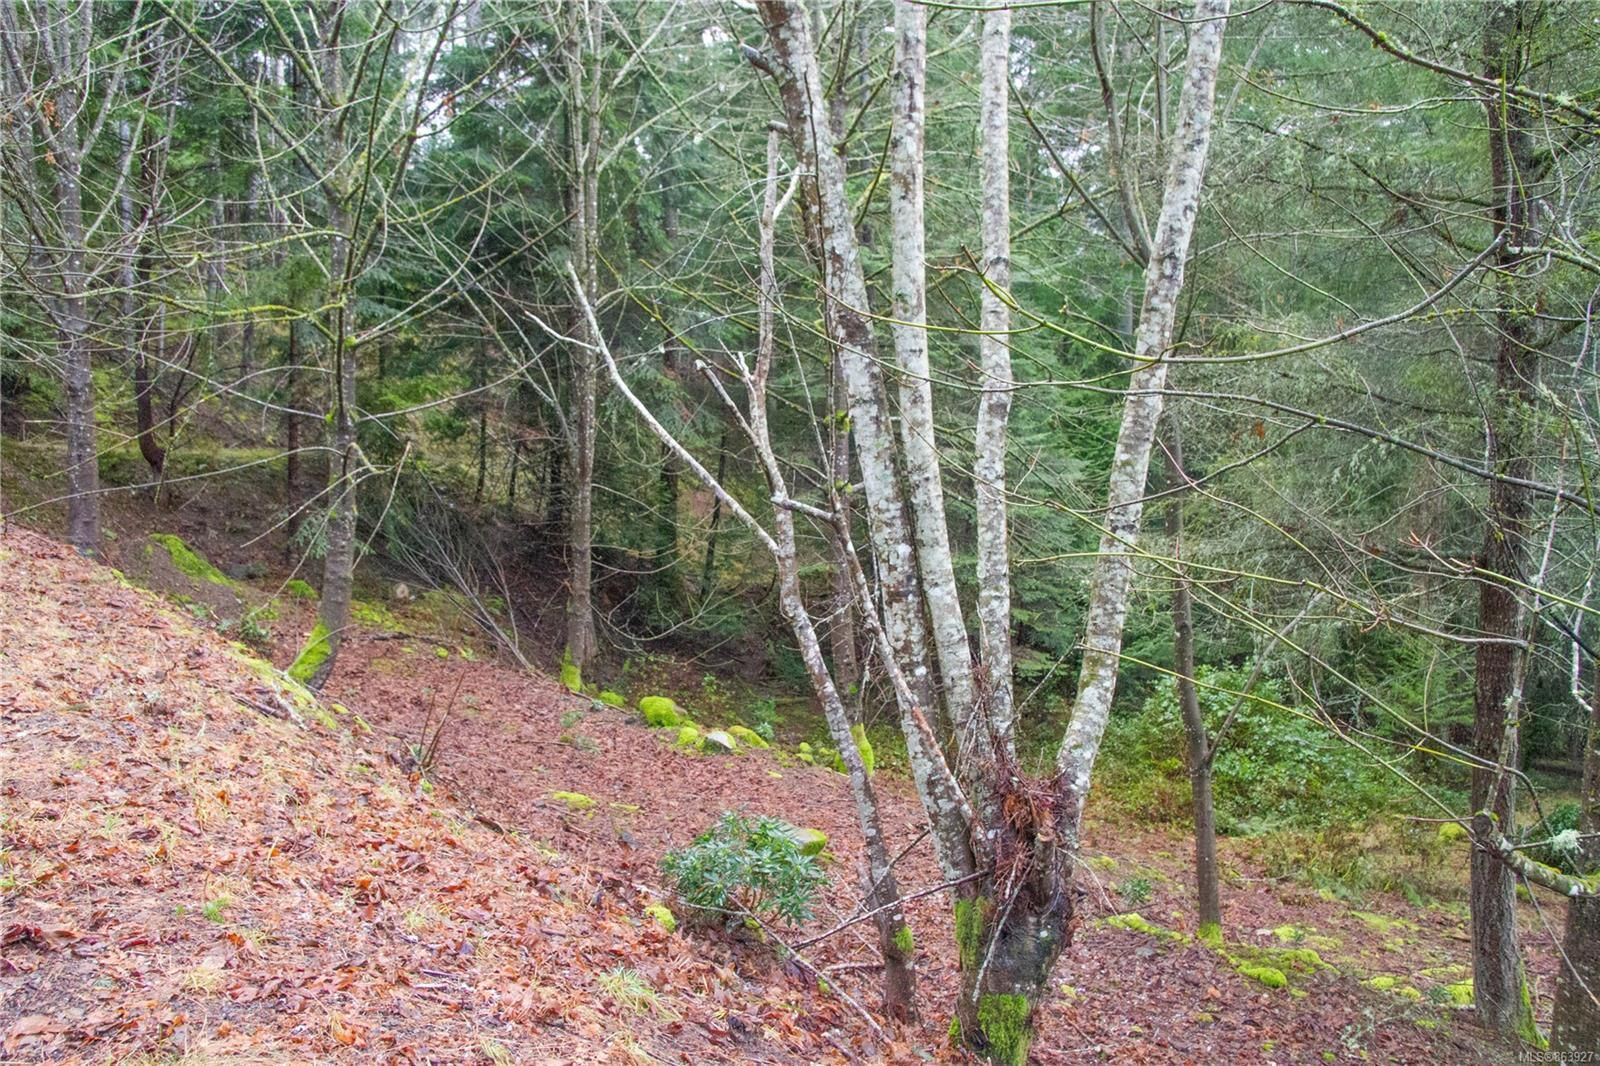 Main Photo: 2604 Yardarm Rd in : GI Pender Island Land for sale (Gulf Islands)  : MLS®# 863927